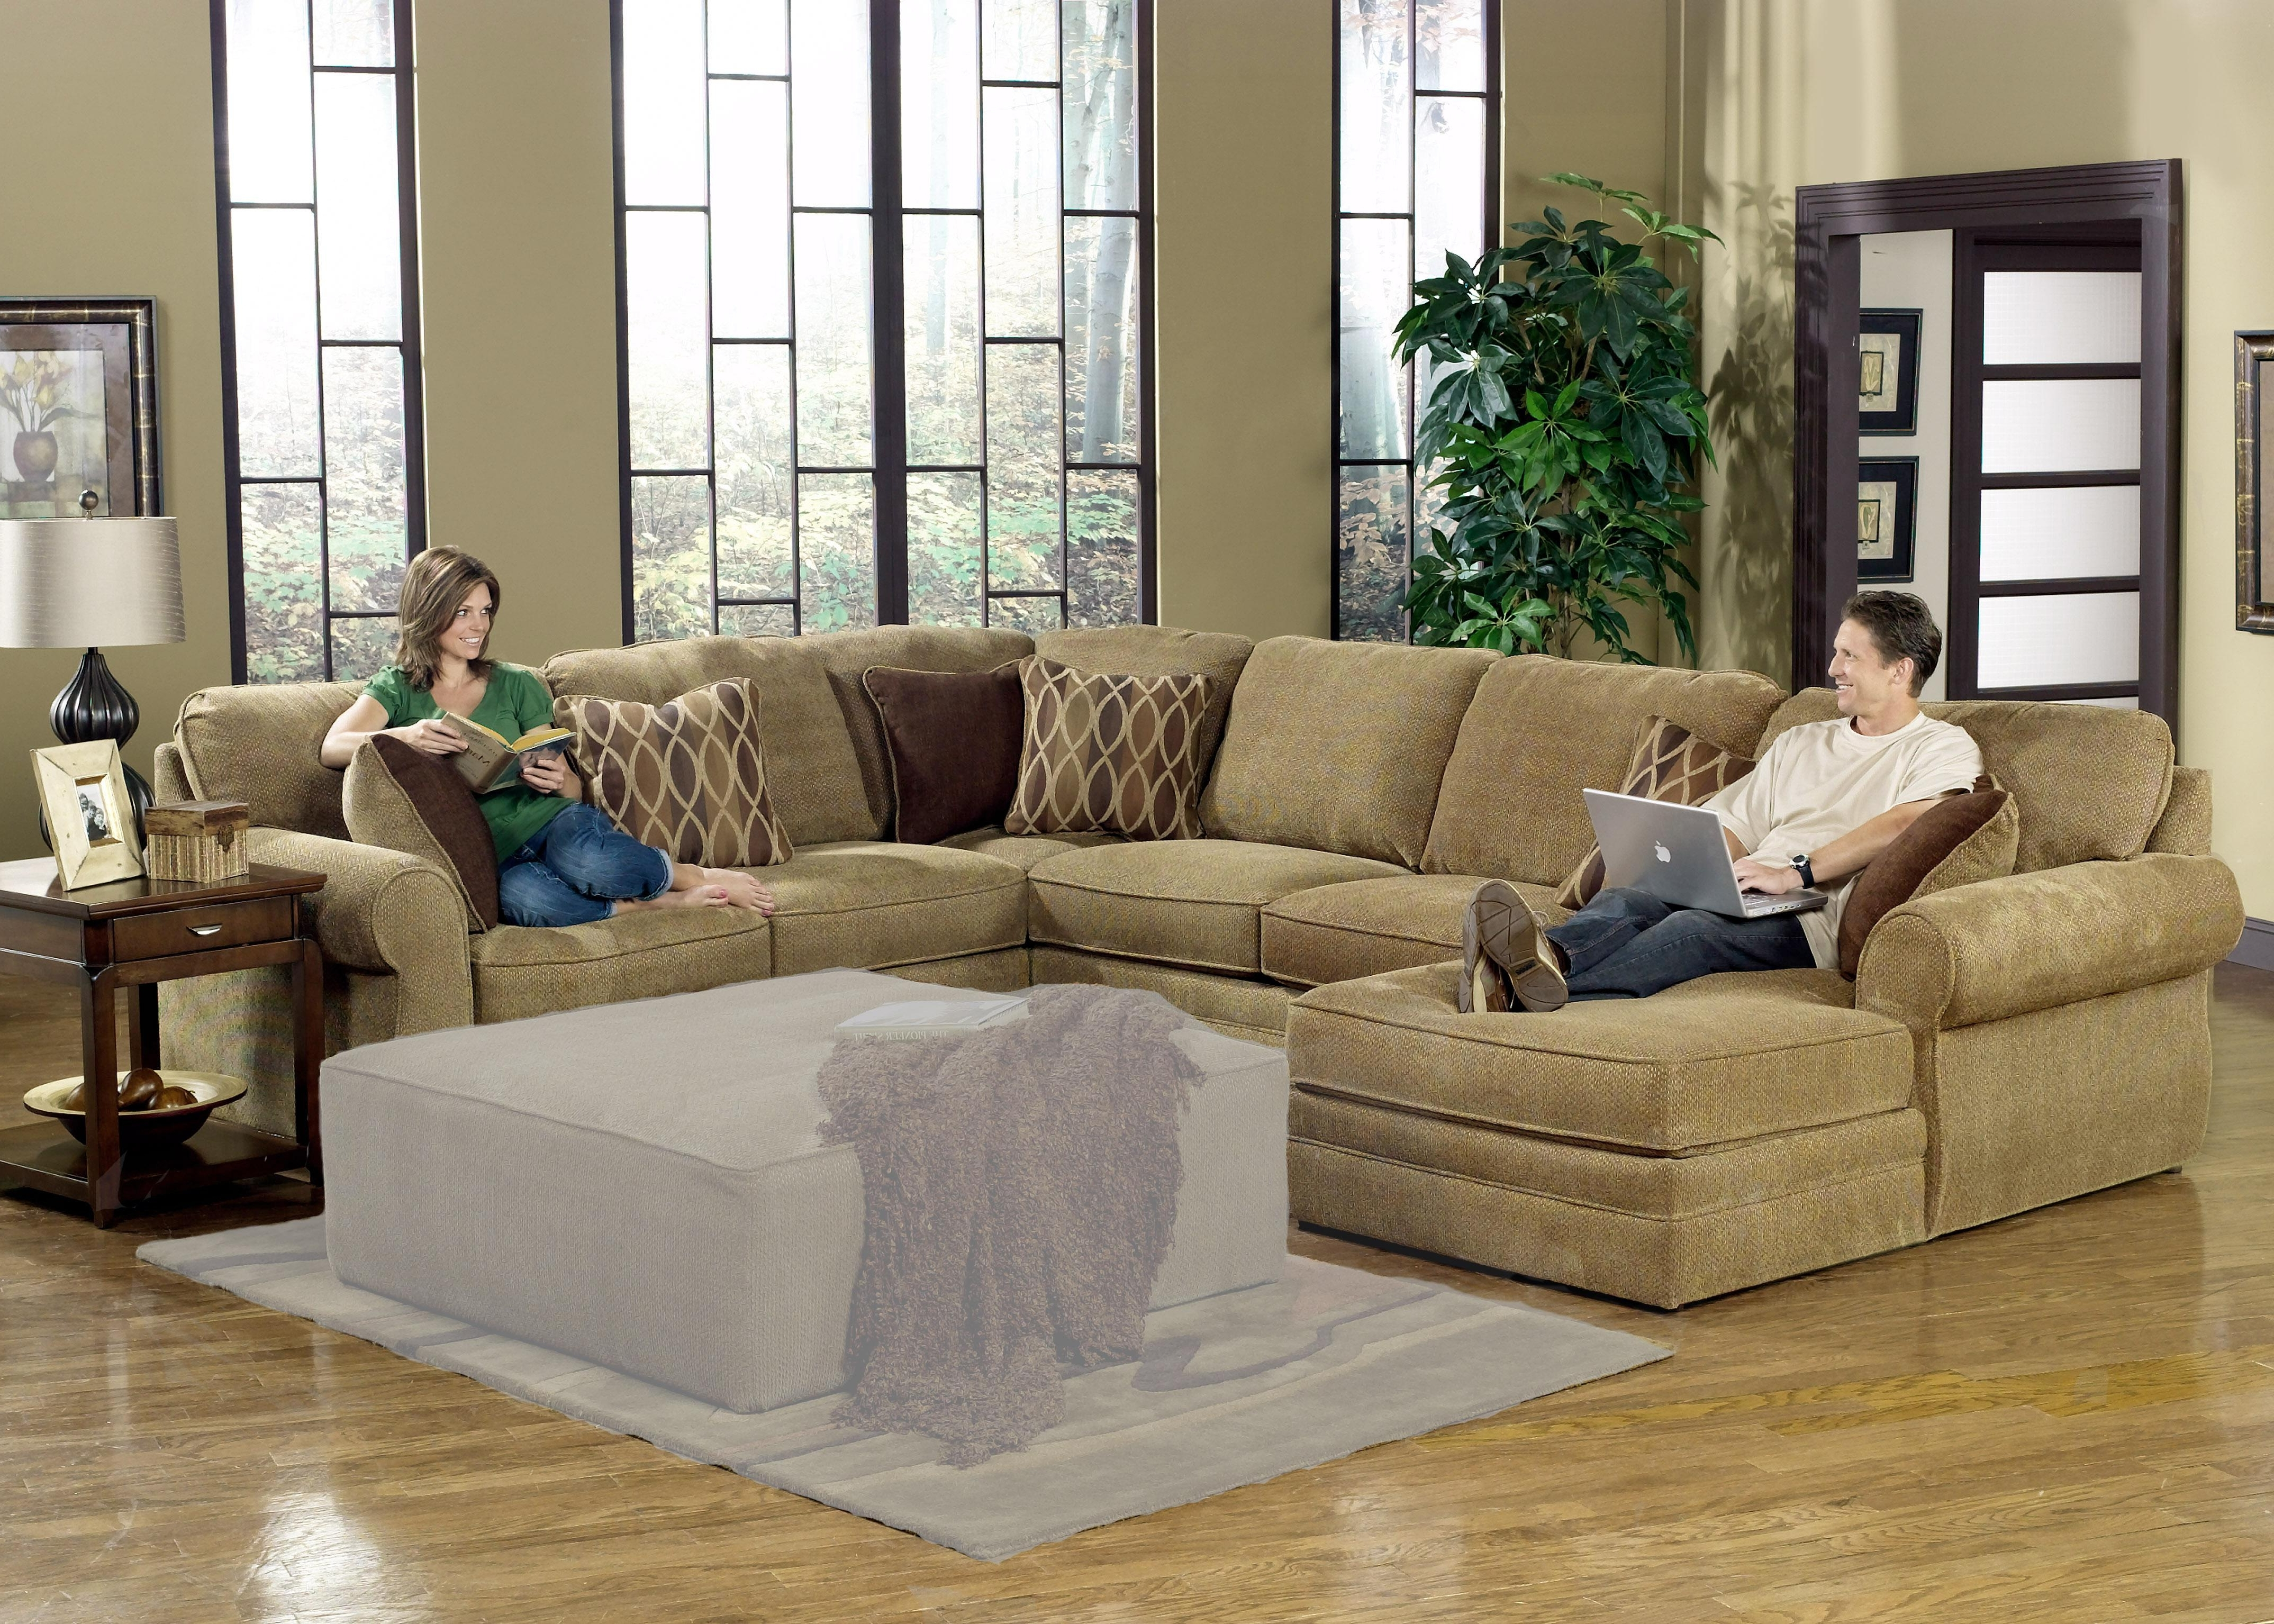 Fascinating U Shaped Sectional Sofas 123 Sofa Sectionals Canada Inside Latest Ontario Sectional Sofas (View 3 of 15)